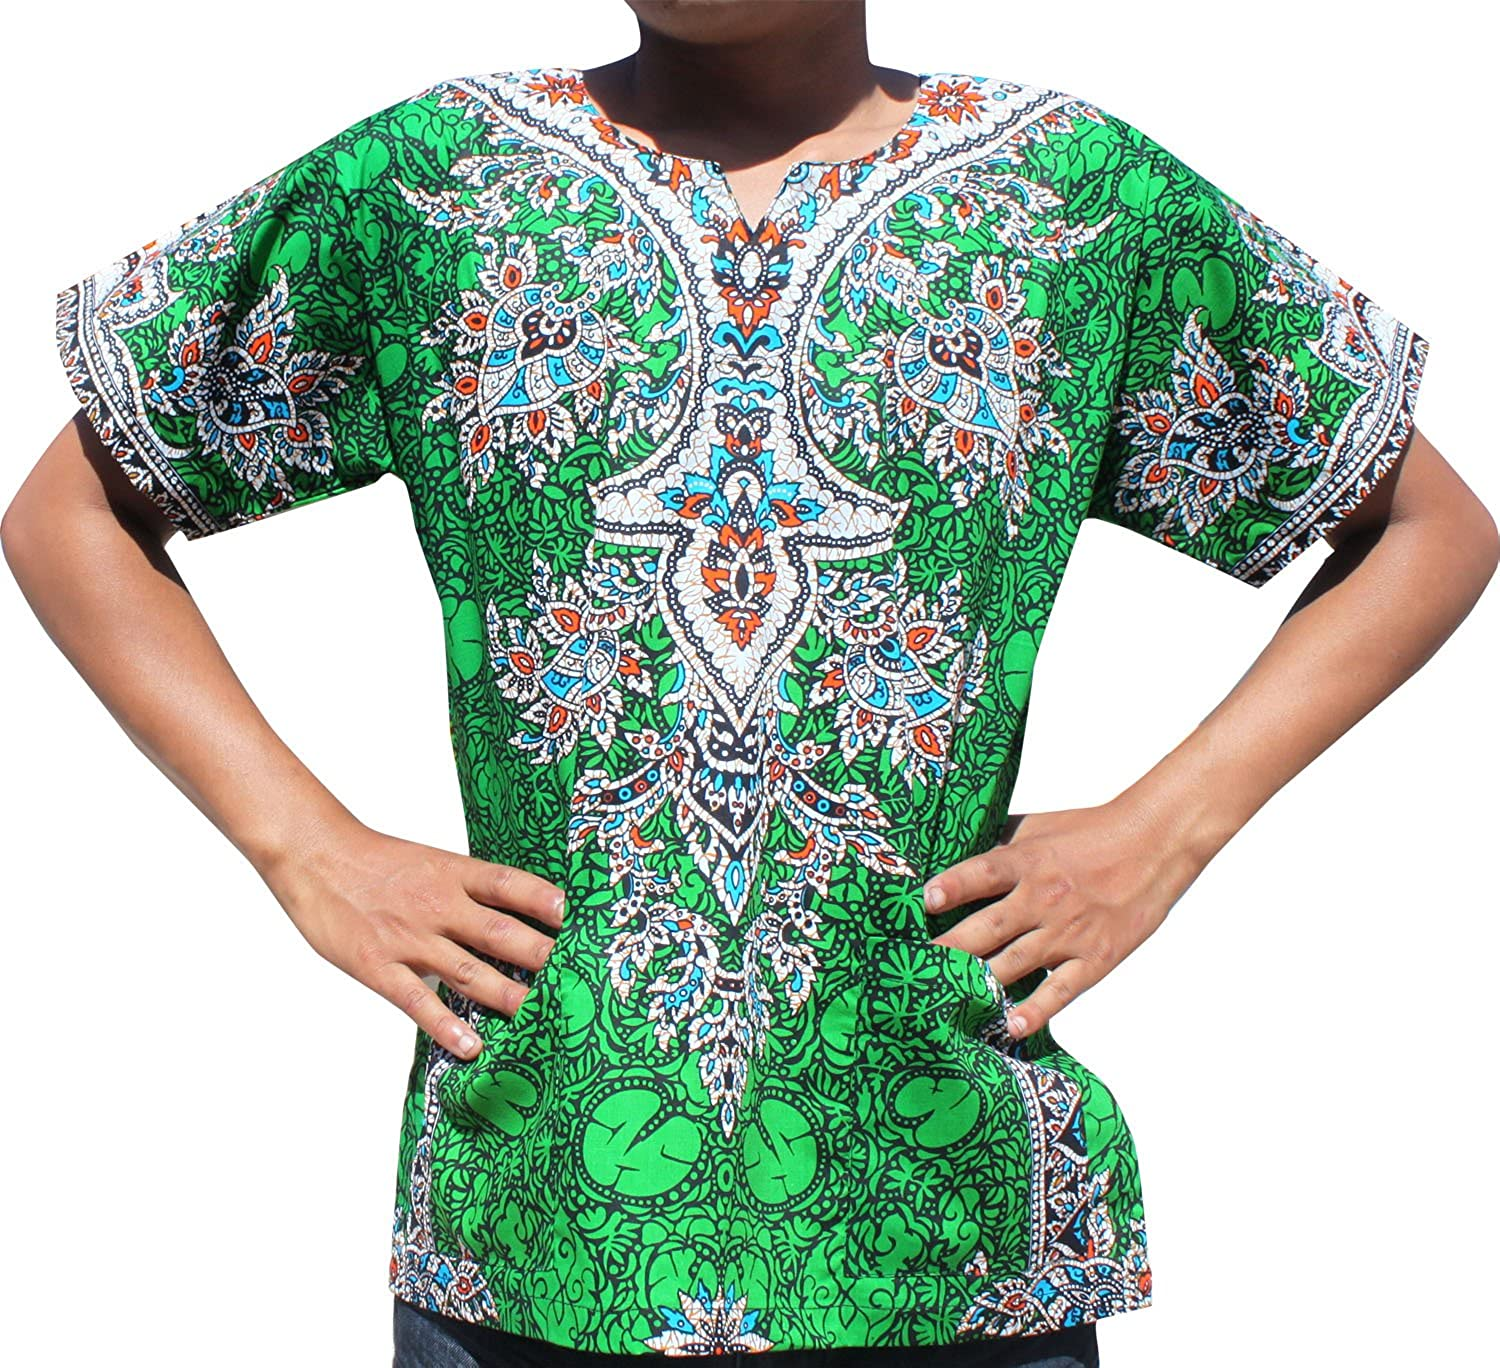 Raan Pah Muang RaanPahMuang Unisex Cotton Shirt Africa Dashiki Detailed Art Vibrant Colors Plus Size variant30710AMZ